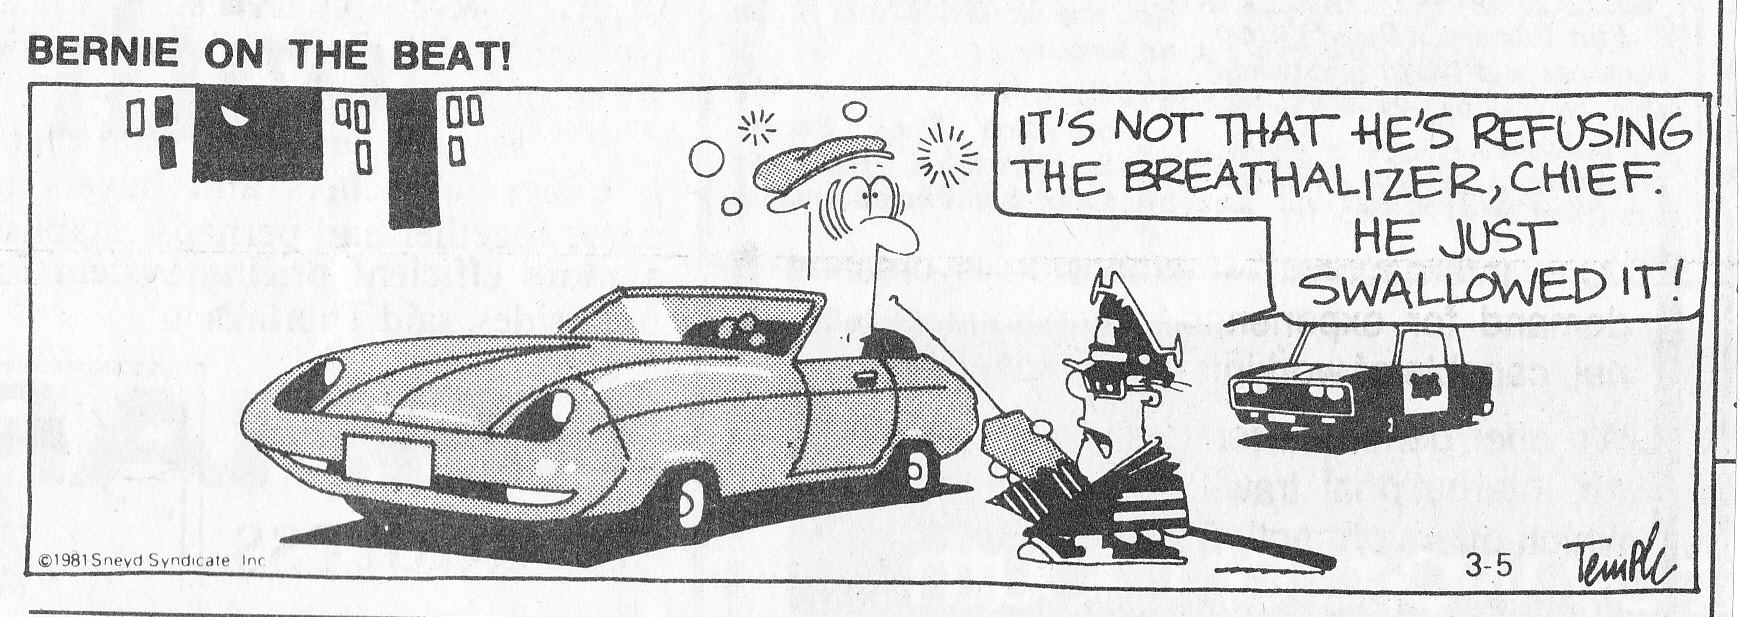 C:\Users\Robert\Documents\CARTOONING ILLUSTRATION ANIMATION\IMAGE CARTOON\IMAGE CARTOON B\BERNIE ON THE BEAT Edmonton Journal 5 March 1981.jpg